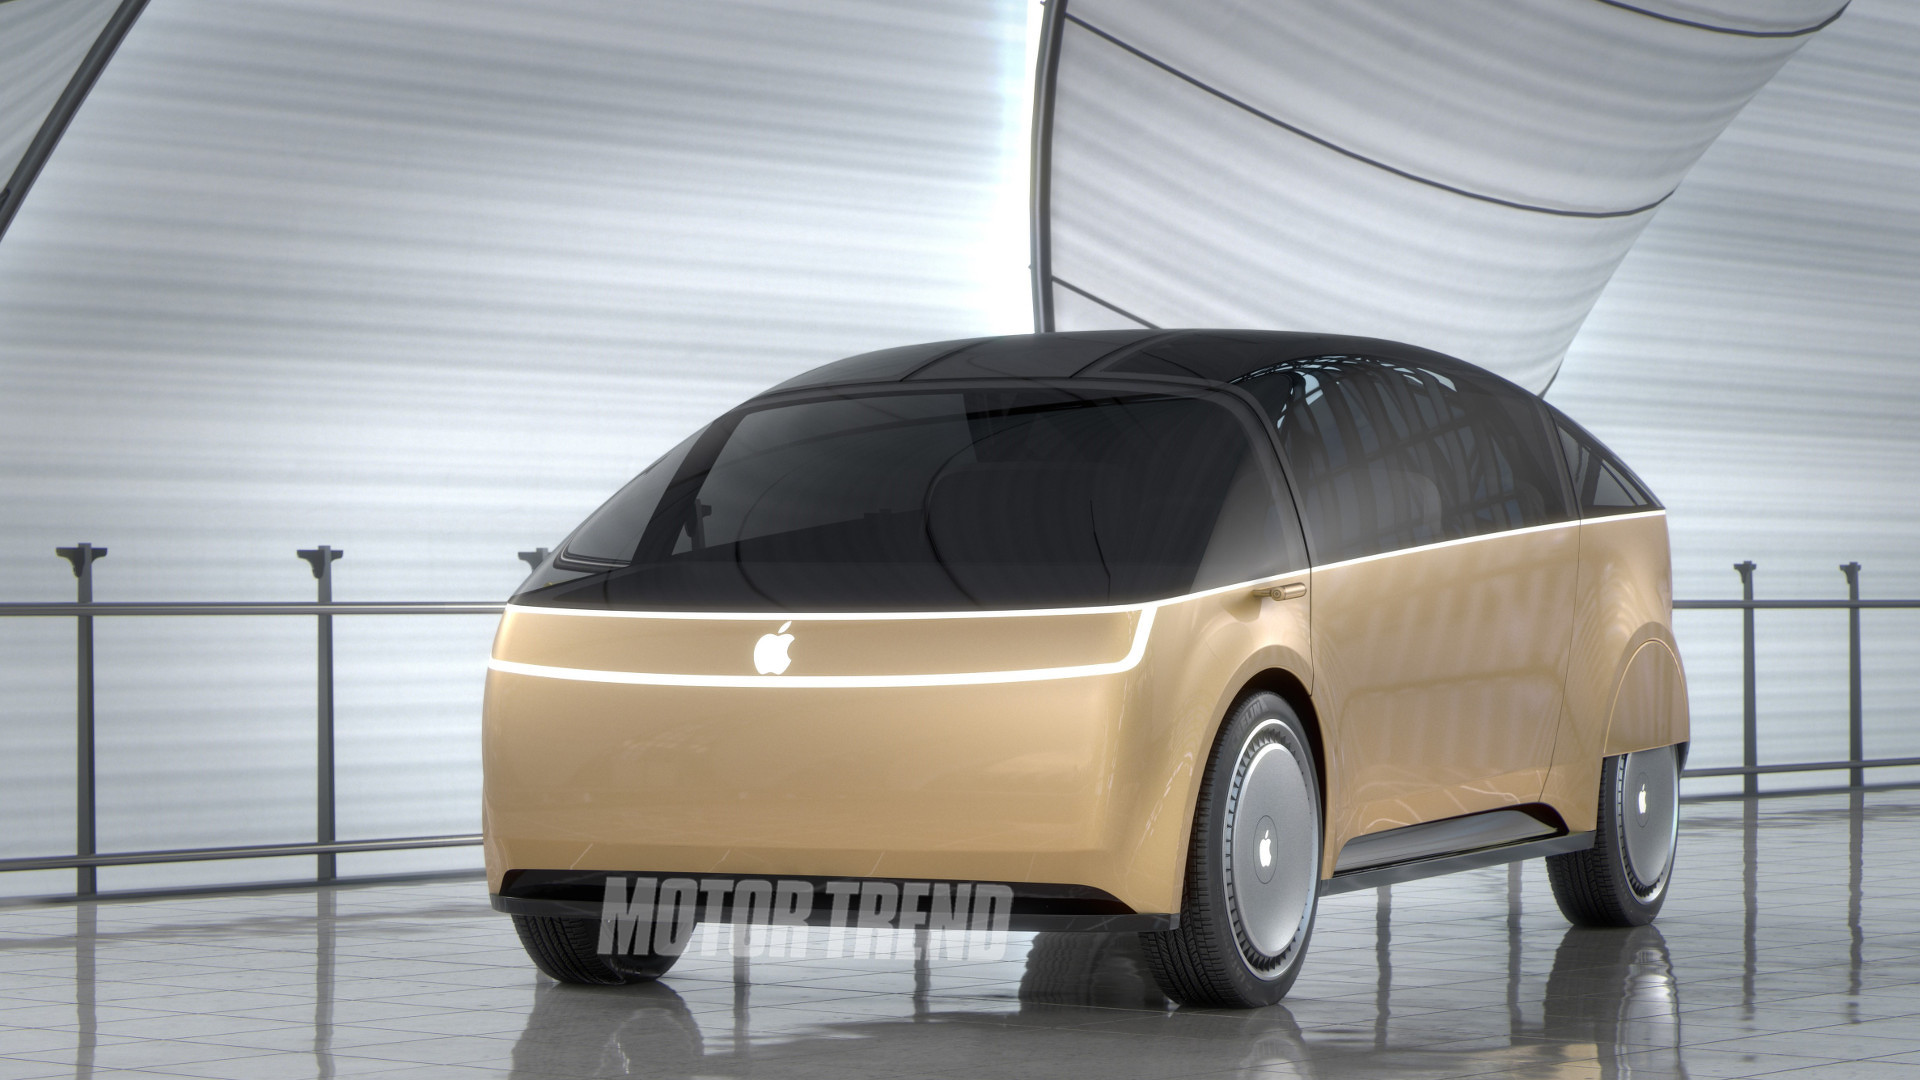 Motor Trend gets tired of waiting, designs the Apple Car itself